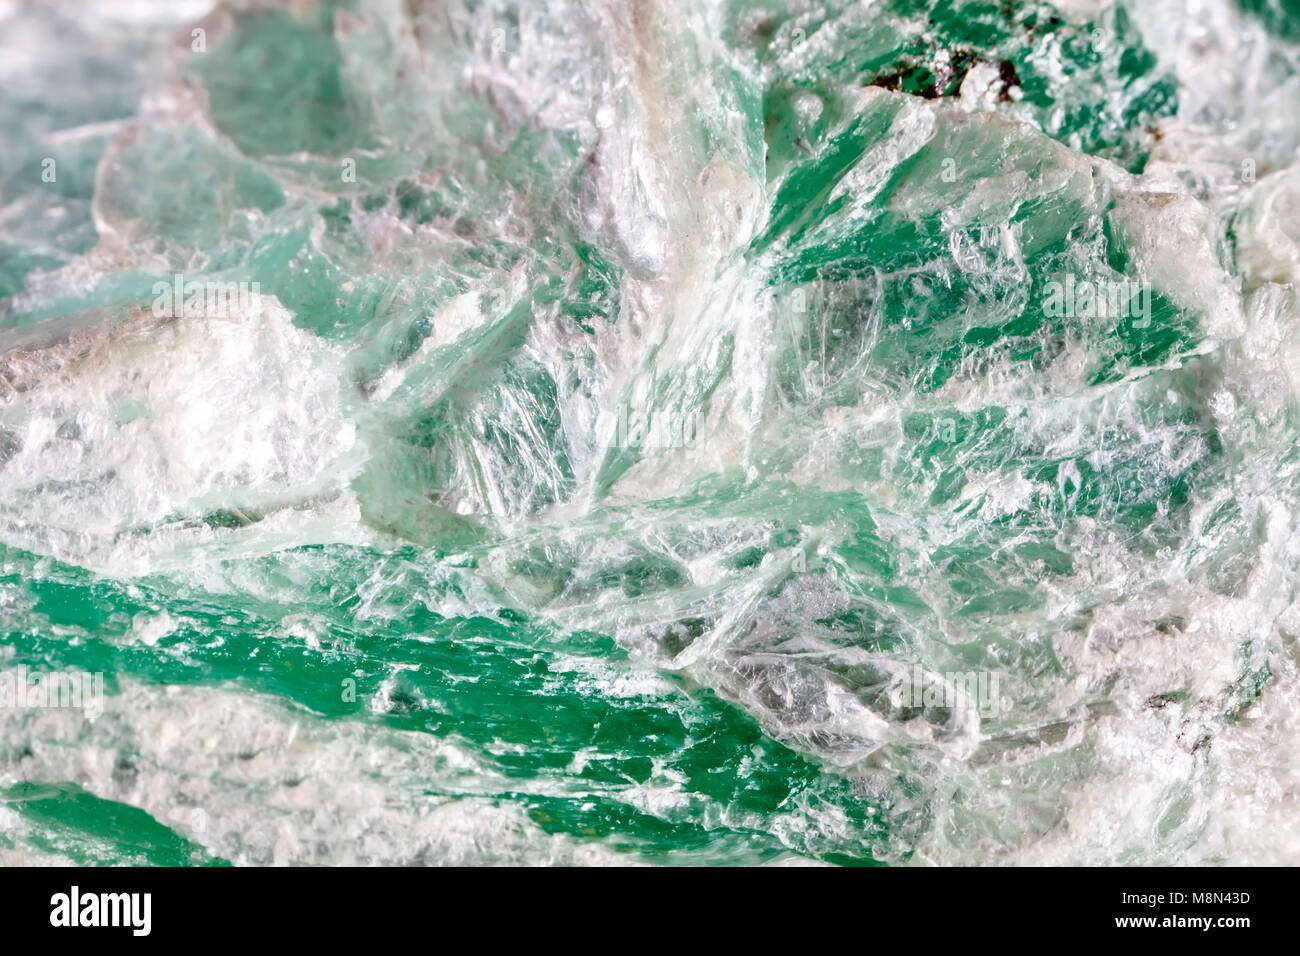 Macro shooting of natural gemstone. The raw mineral is talc. - Stock Image